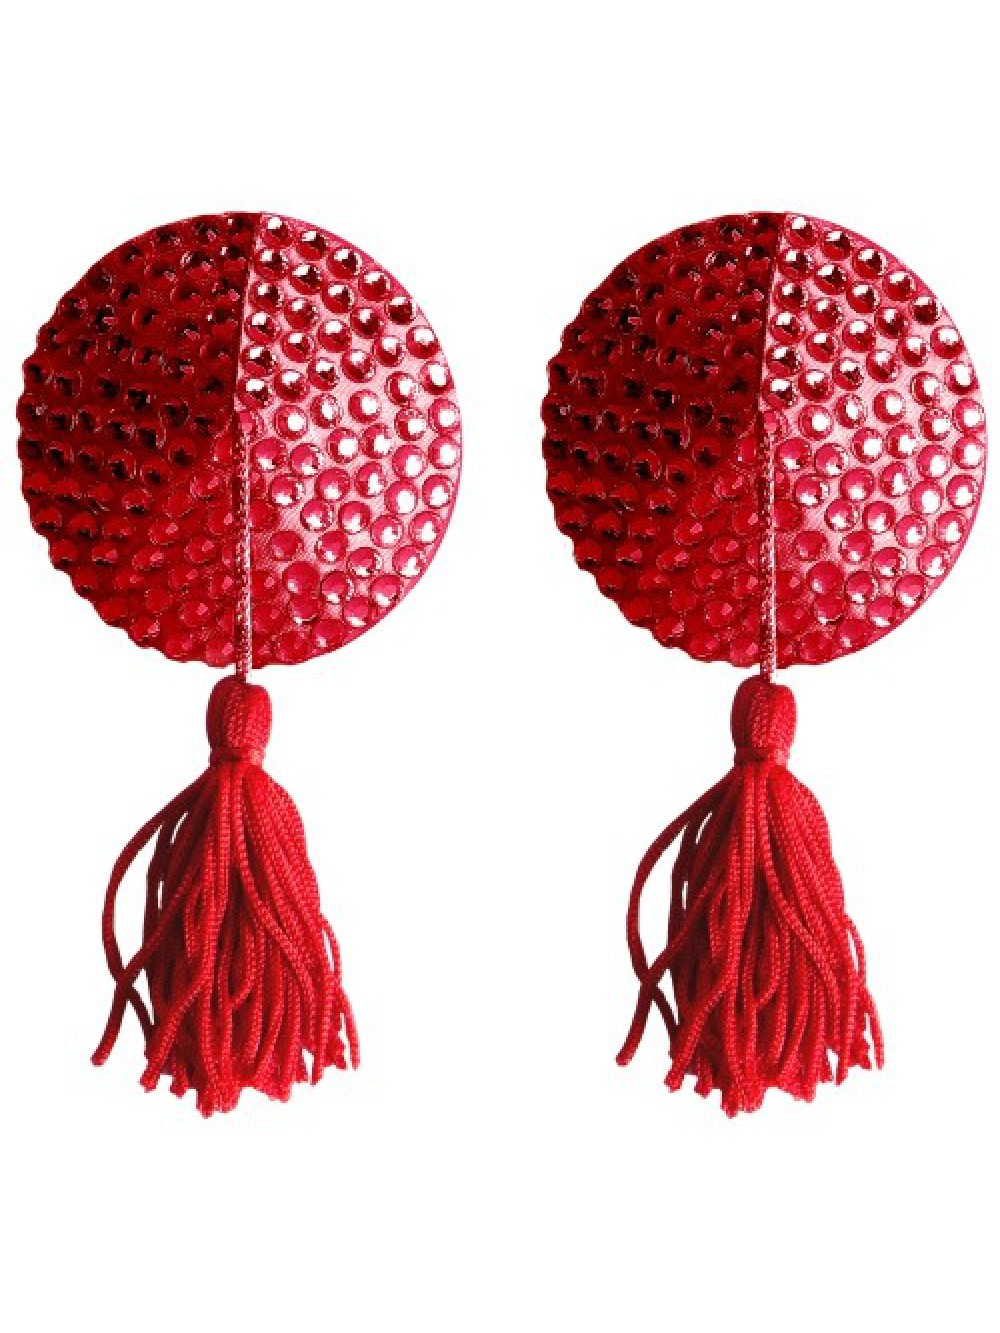 ROUND NIPPLE TASSELS OUCH! NIPPLE COVERS RED 8714273948168